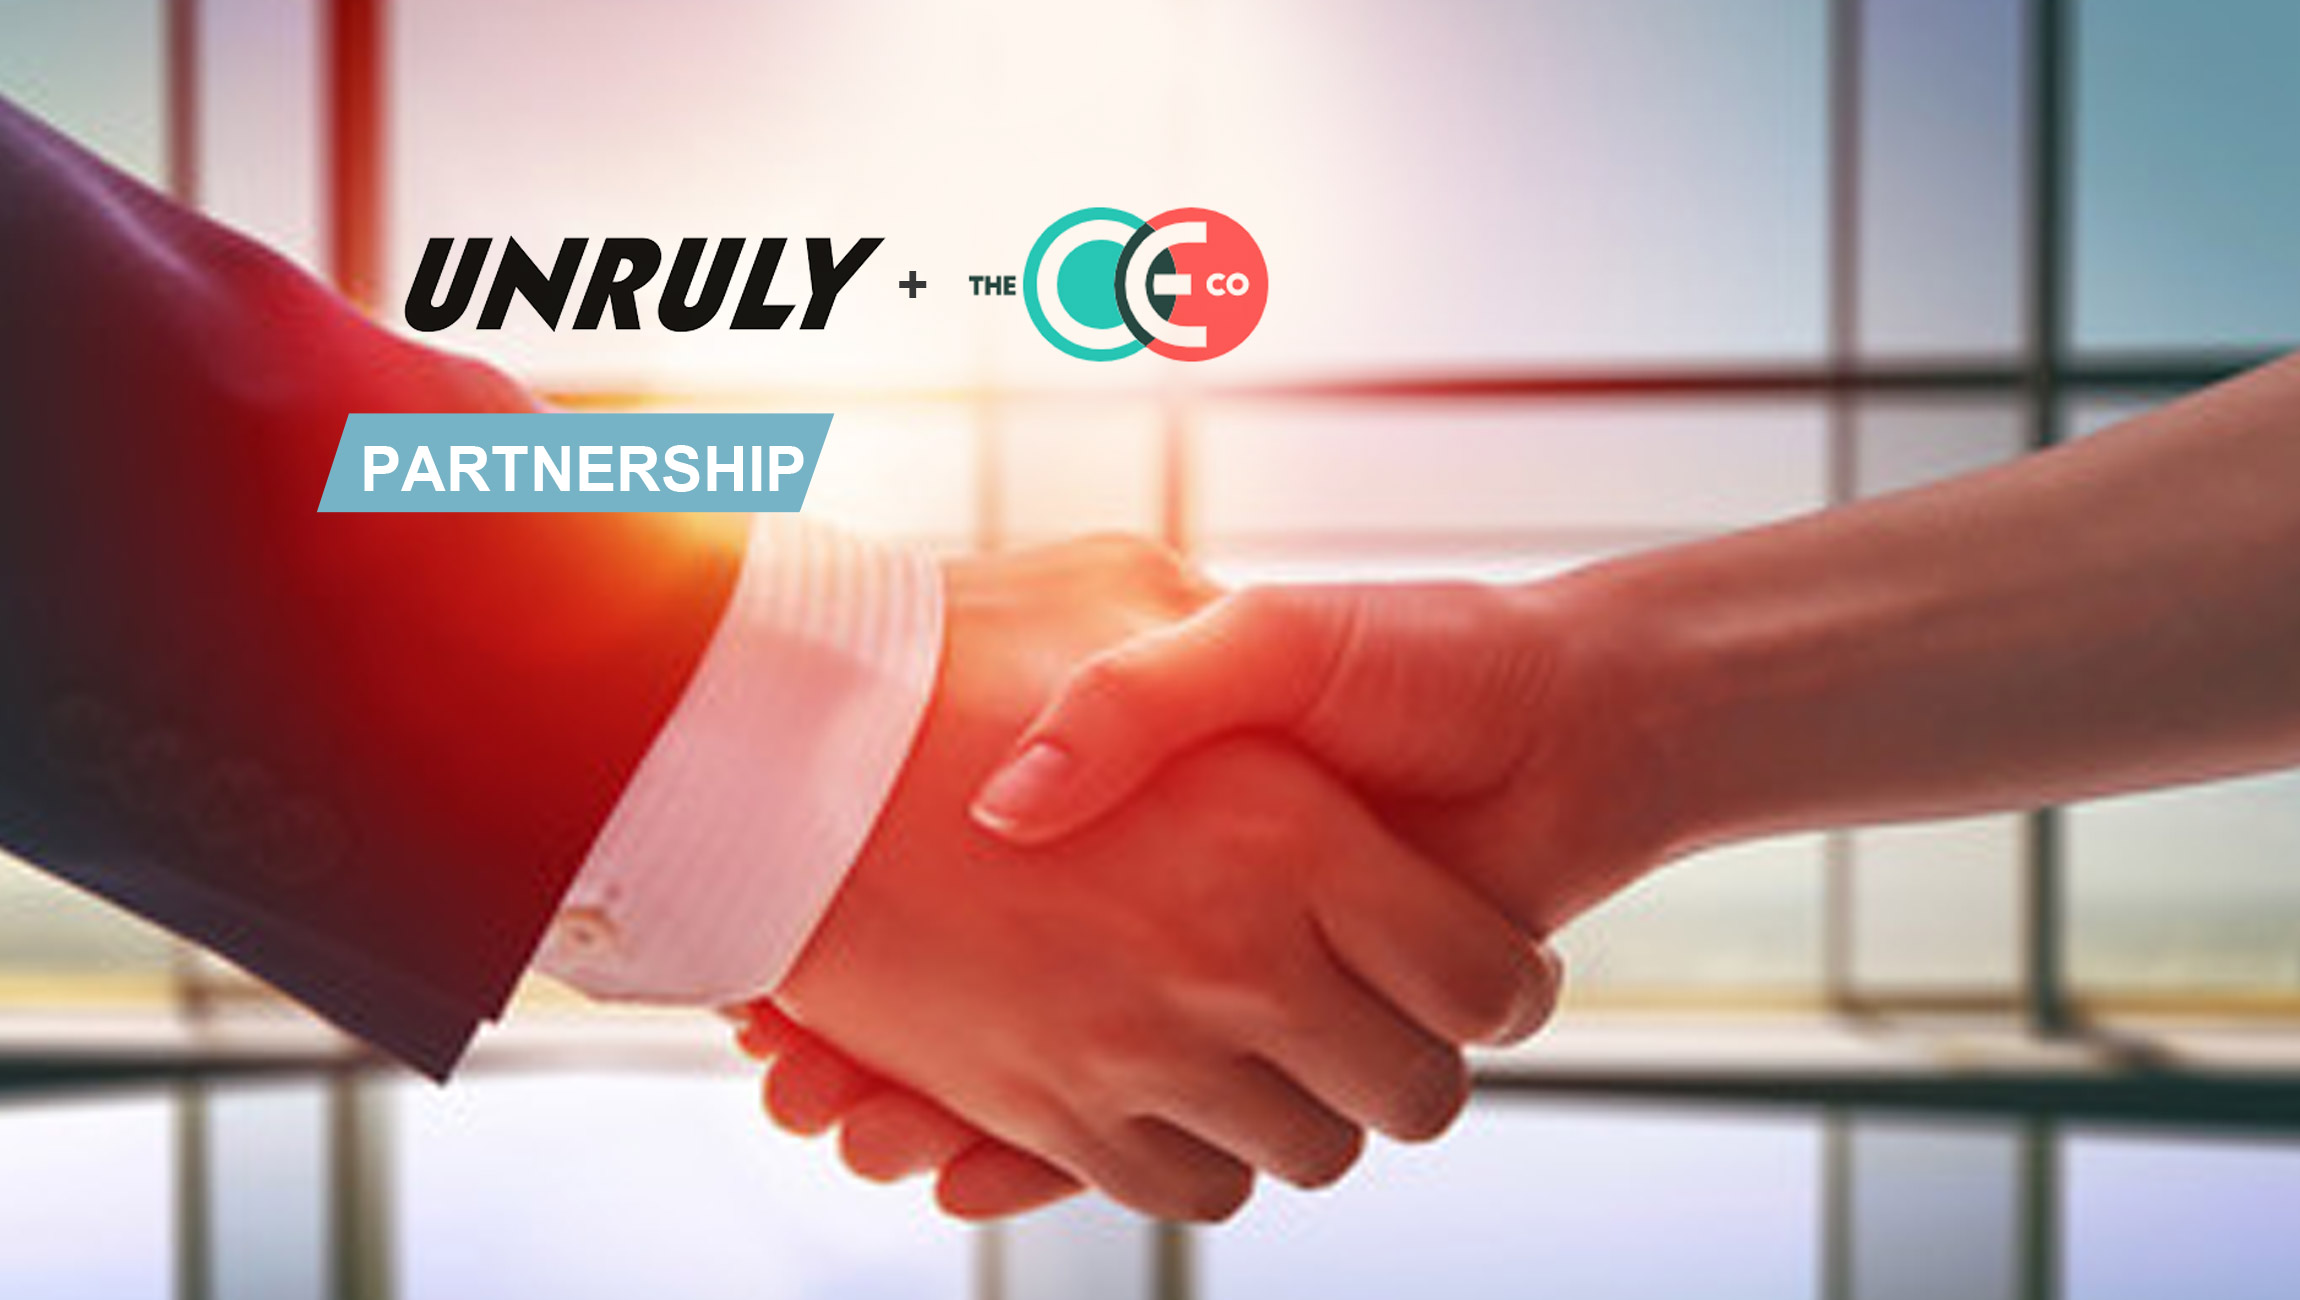 Ad Platform Unruly Partners With Thece In Global esports And Gaming Deal